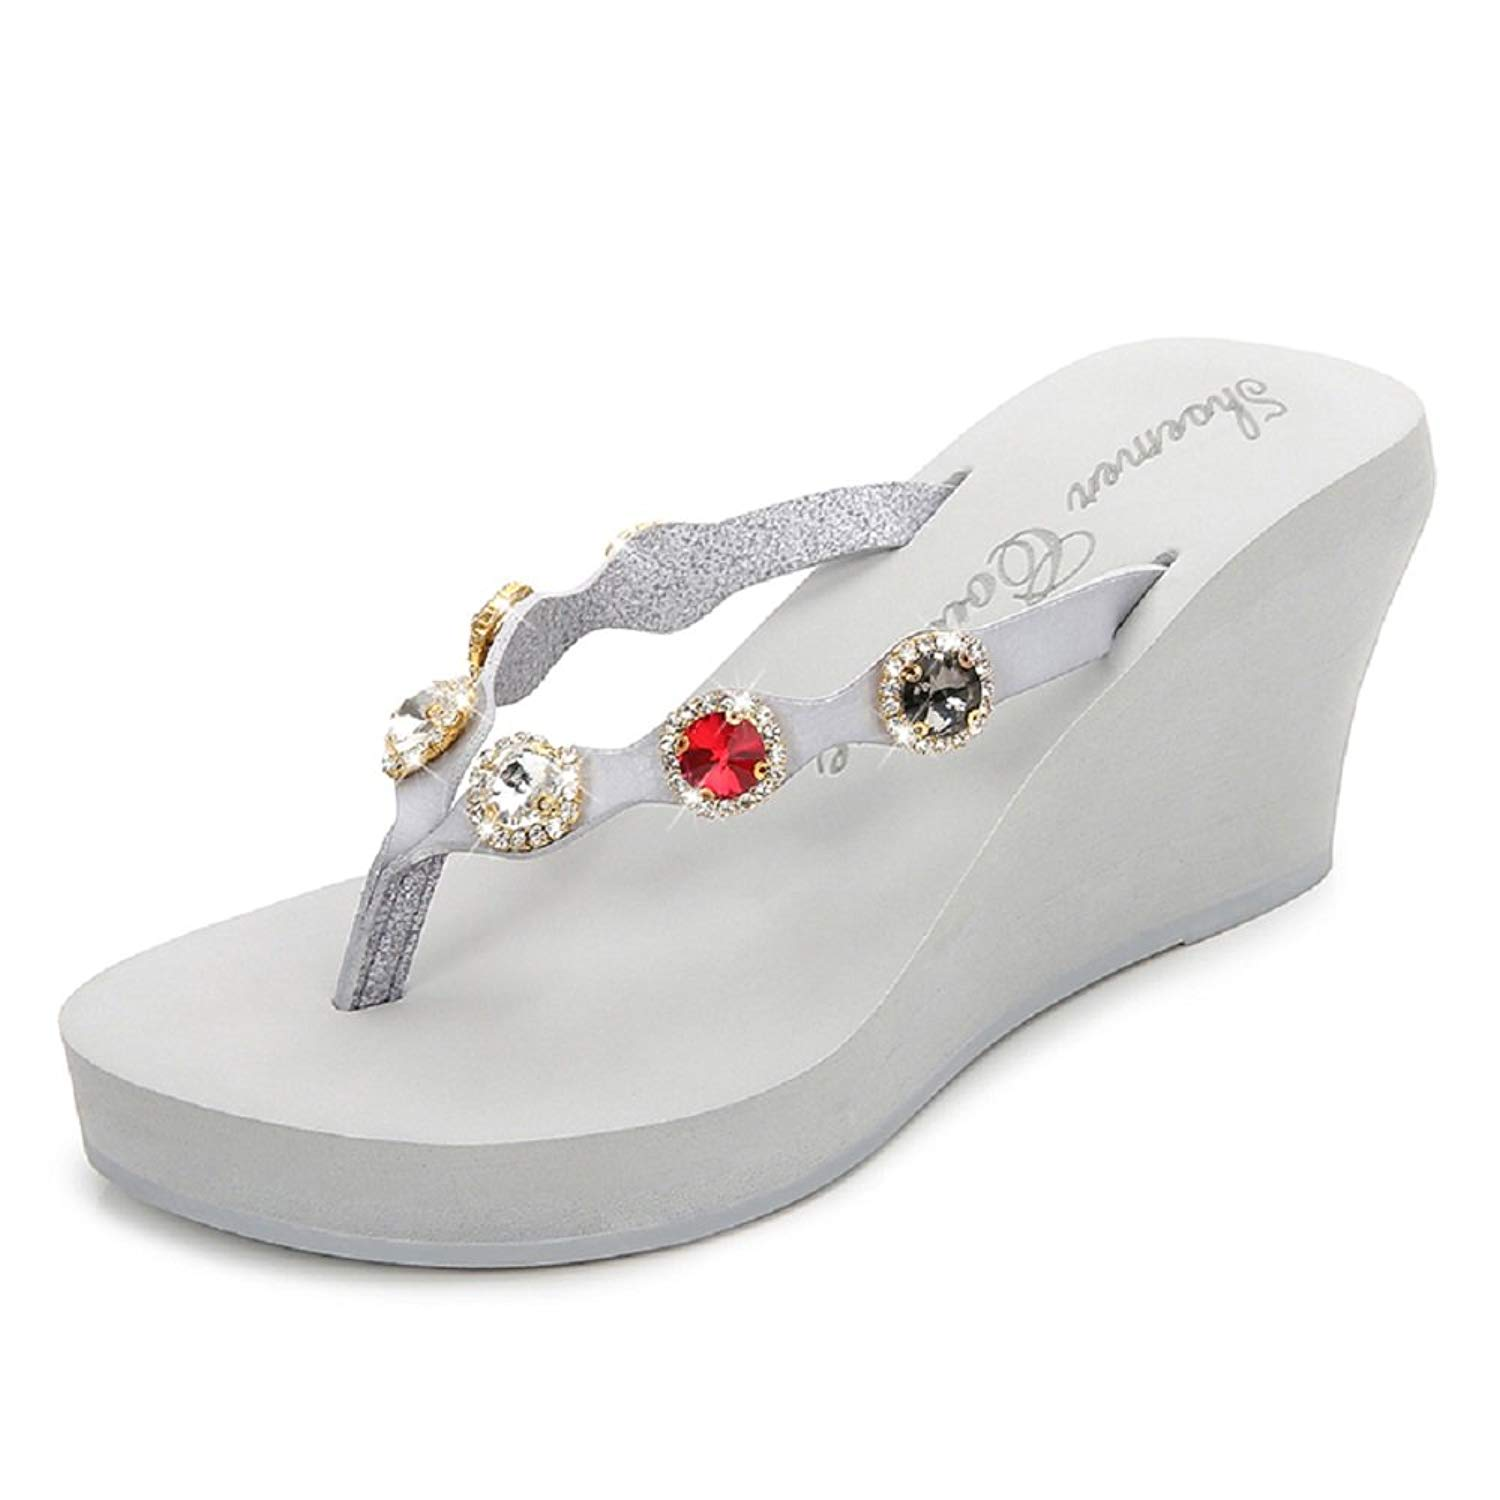 2134cad64f02 Get Quotations · Gold Cloud Women Lady Girl New Fashion Several Rhinestones  Flip Flops Wedge Platform Sandals Thongs Casual